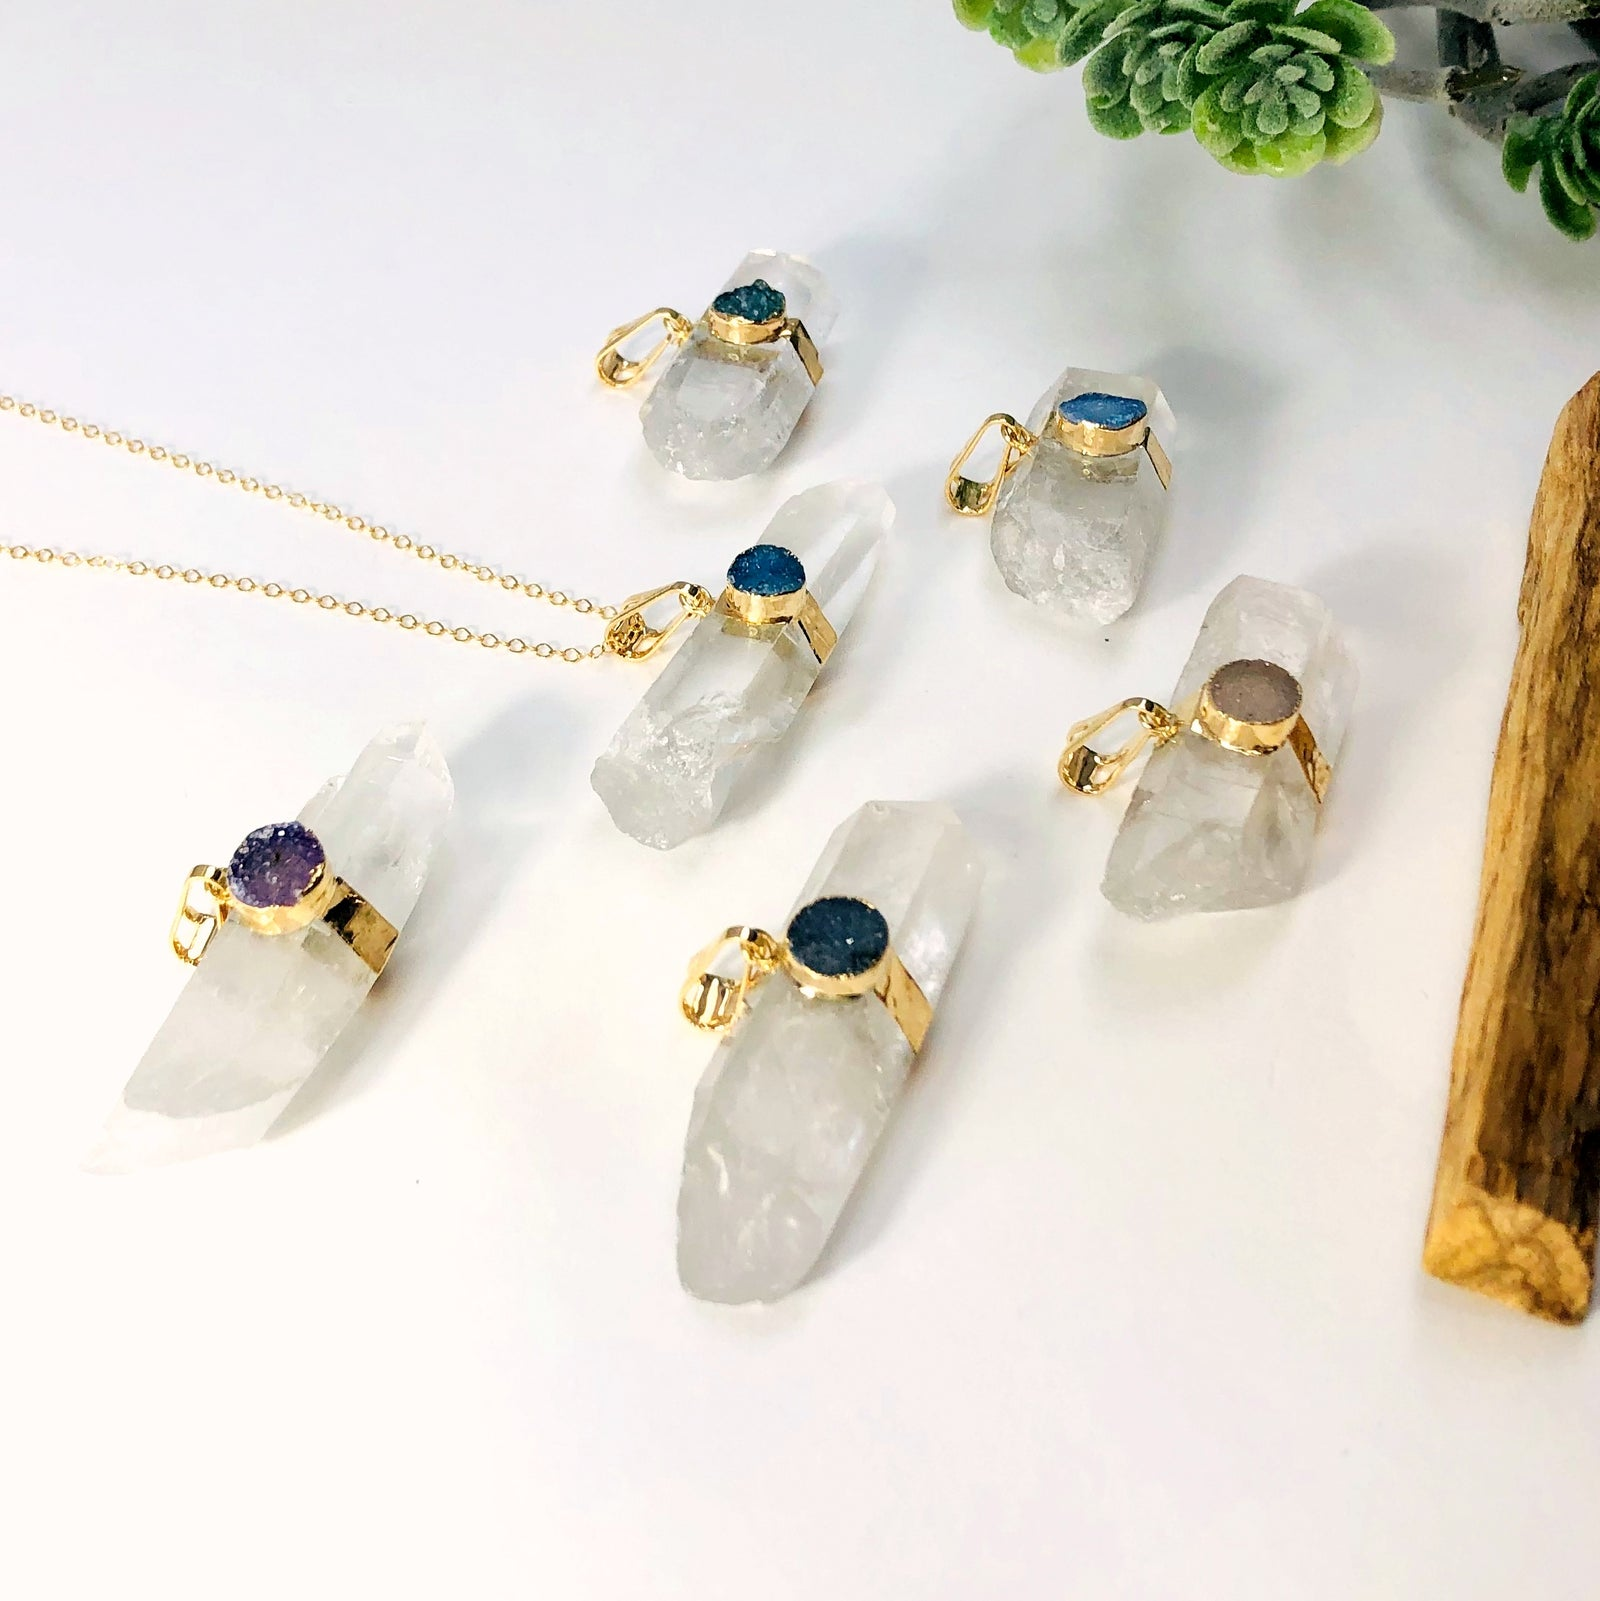 Crystal Quartz Pendant with Druzy Accent (S51B4-10)